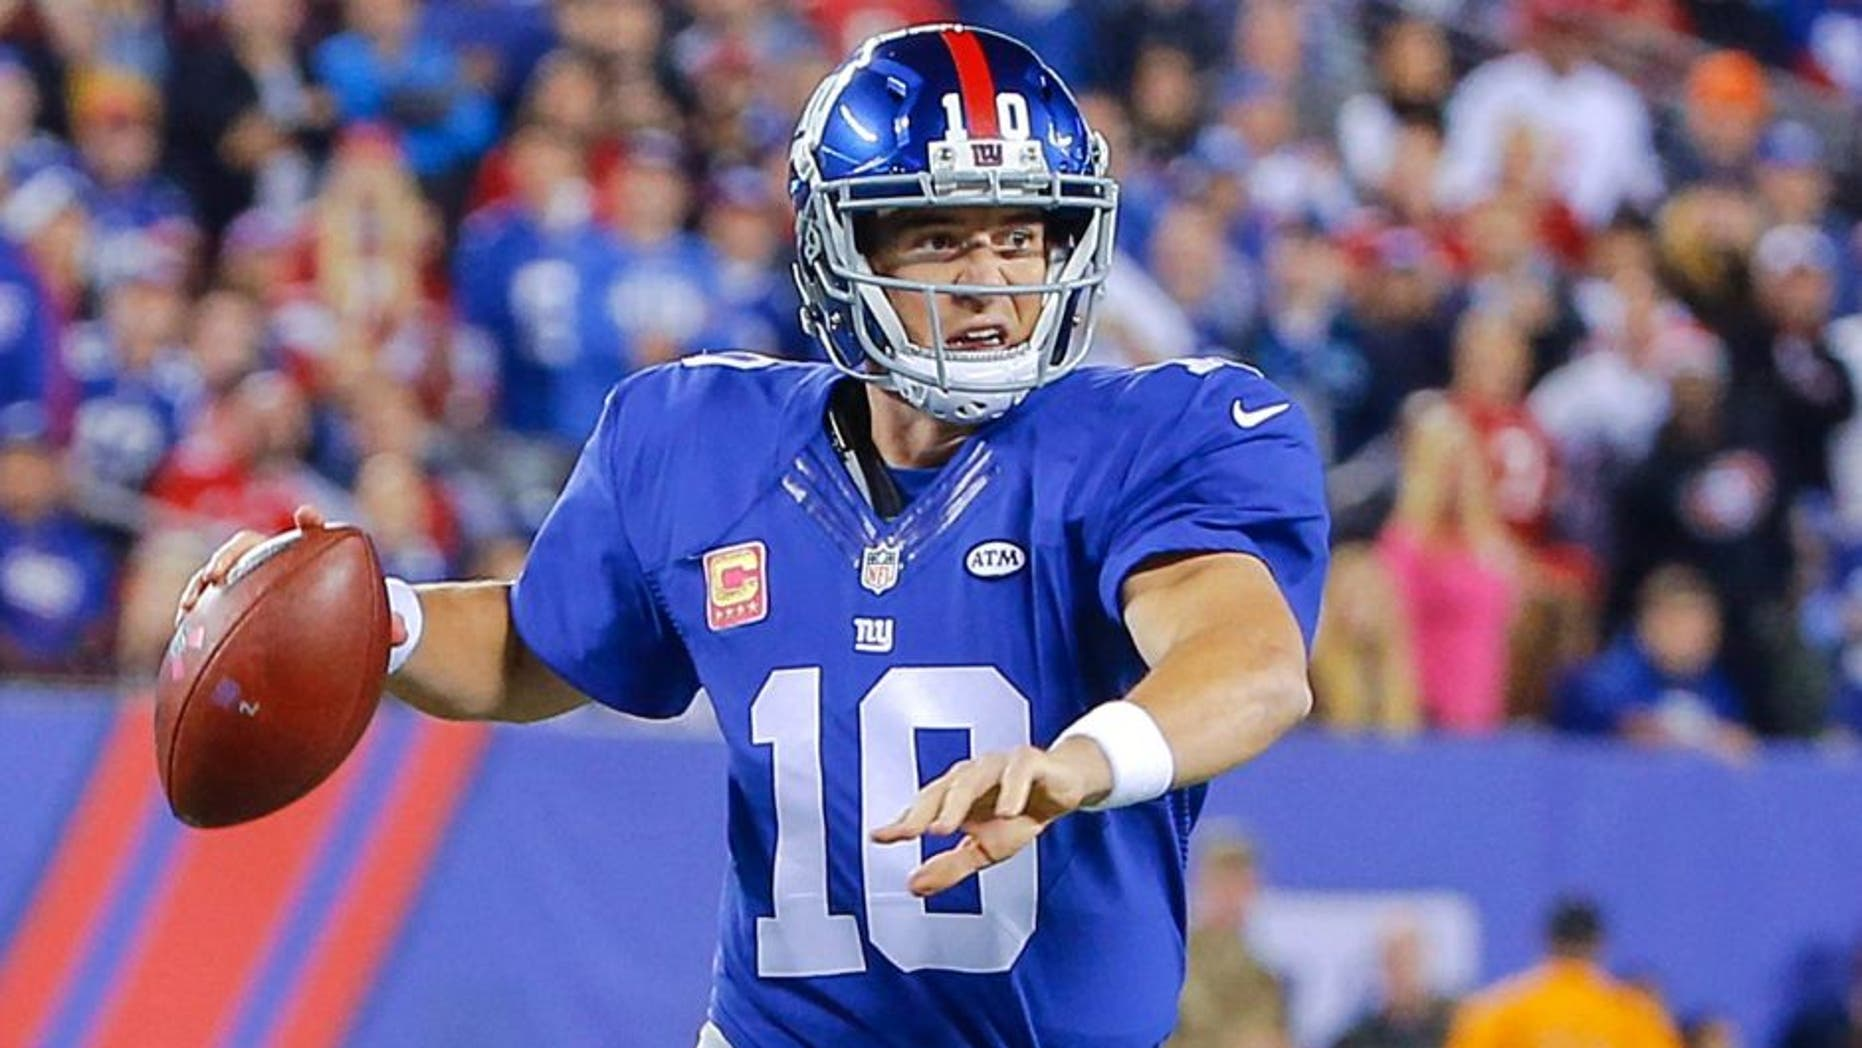 Oct 11, 2015; East Rutherford, NJ, USA; New York Giants quarterback Eli Manning (10) prepares to throw the ball during the first quarter against the San Francisco 49ers at MetLife Stadium. Mandatory Credit: Jim O'Connor-USA TODAY Sports